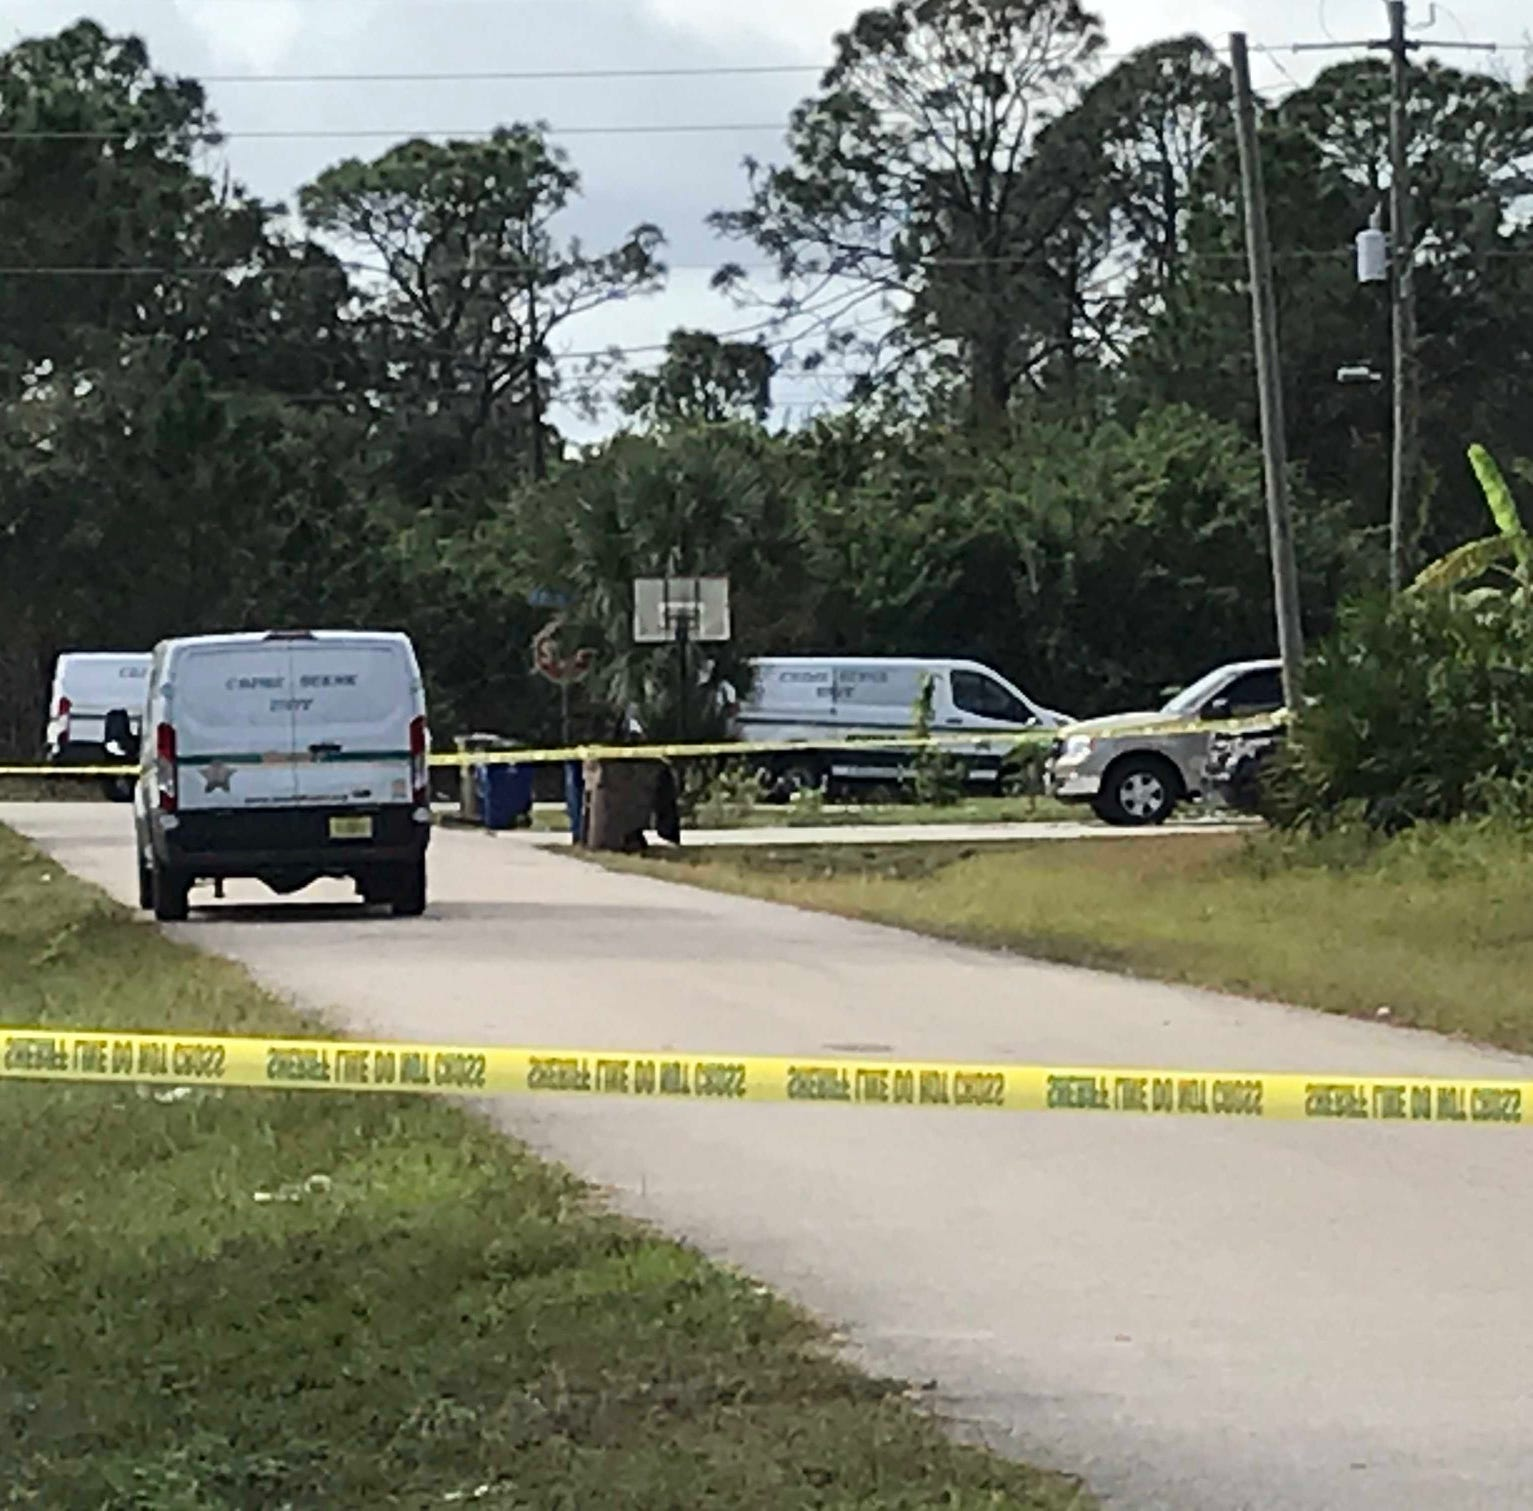 Lee County Sheriff's Office identifies victim after homicide in Lehigh Acres